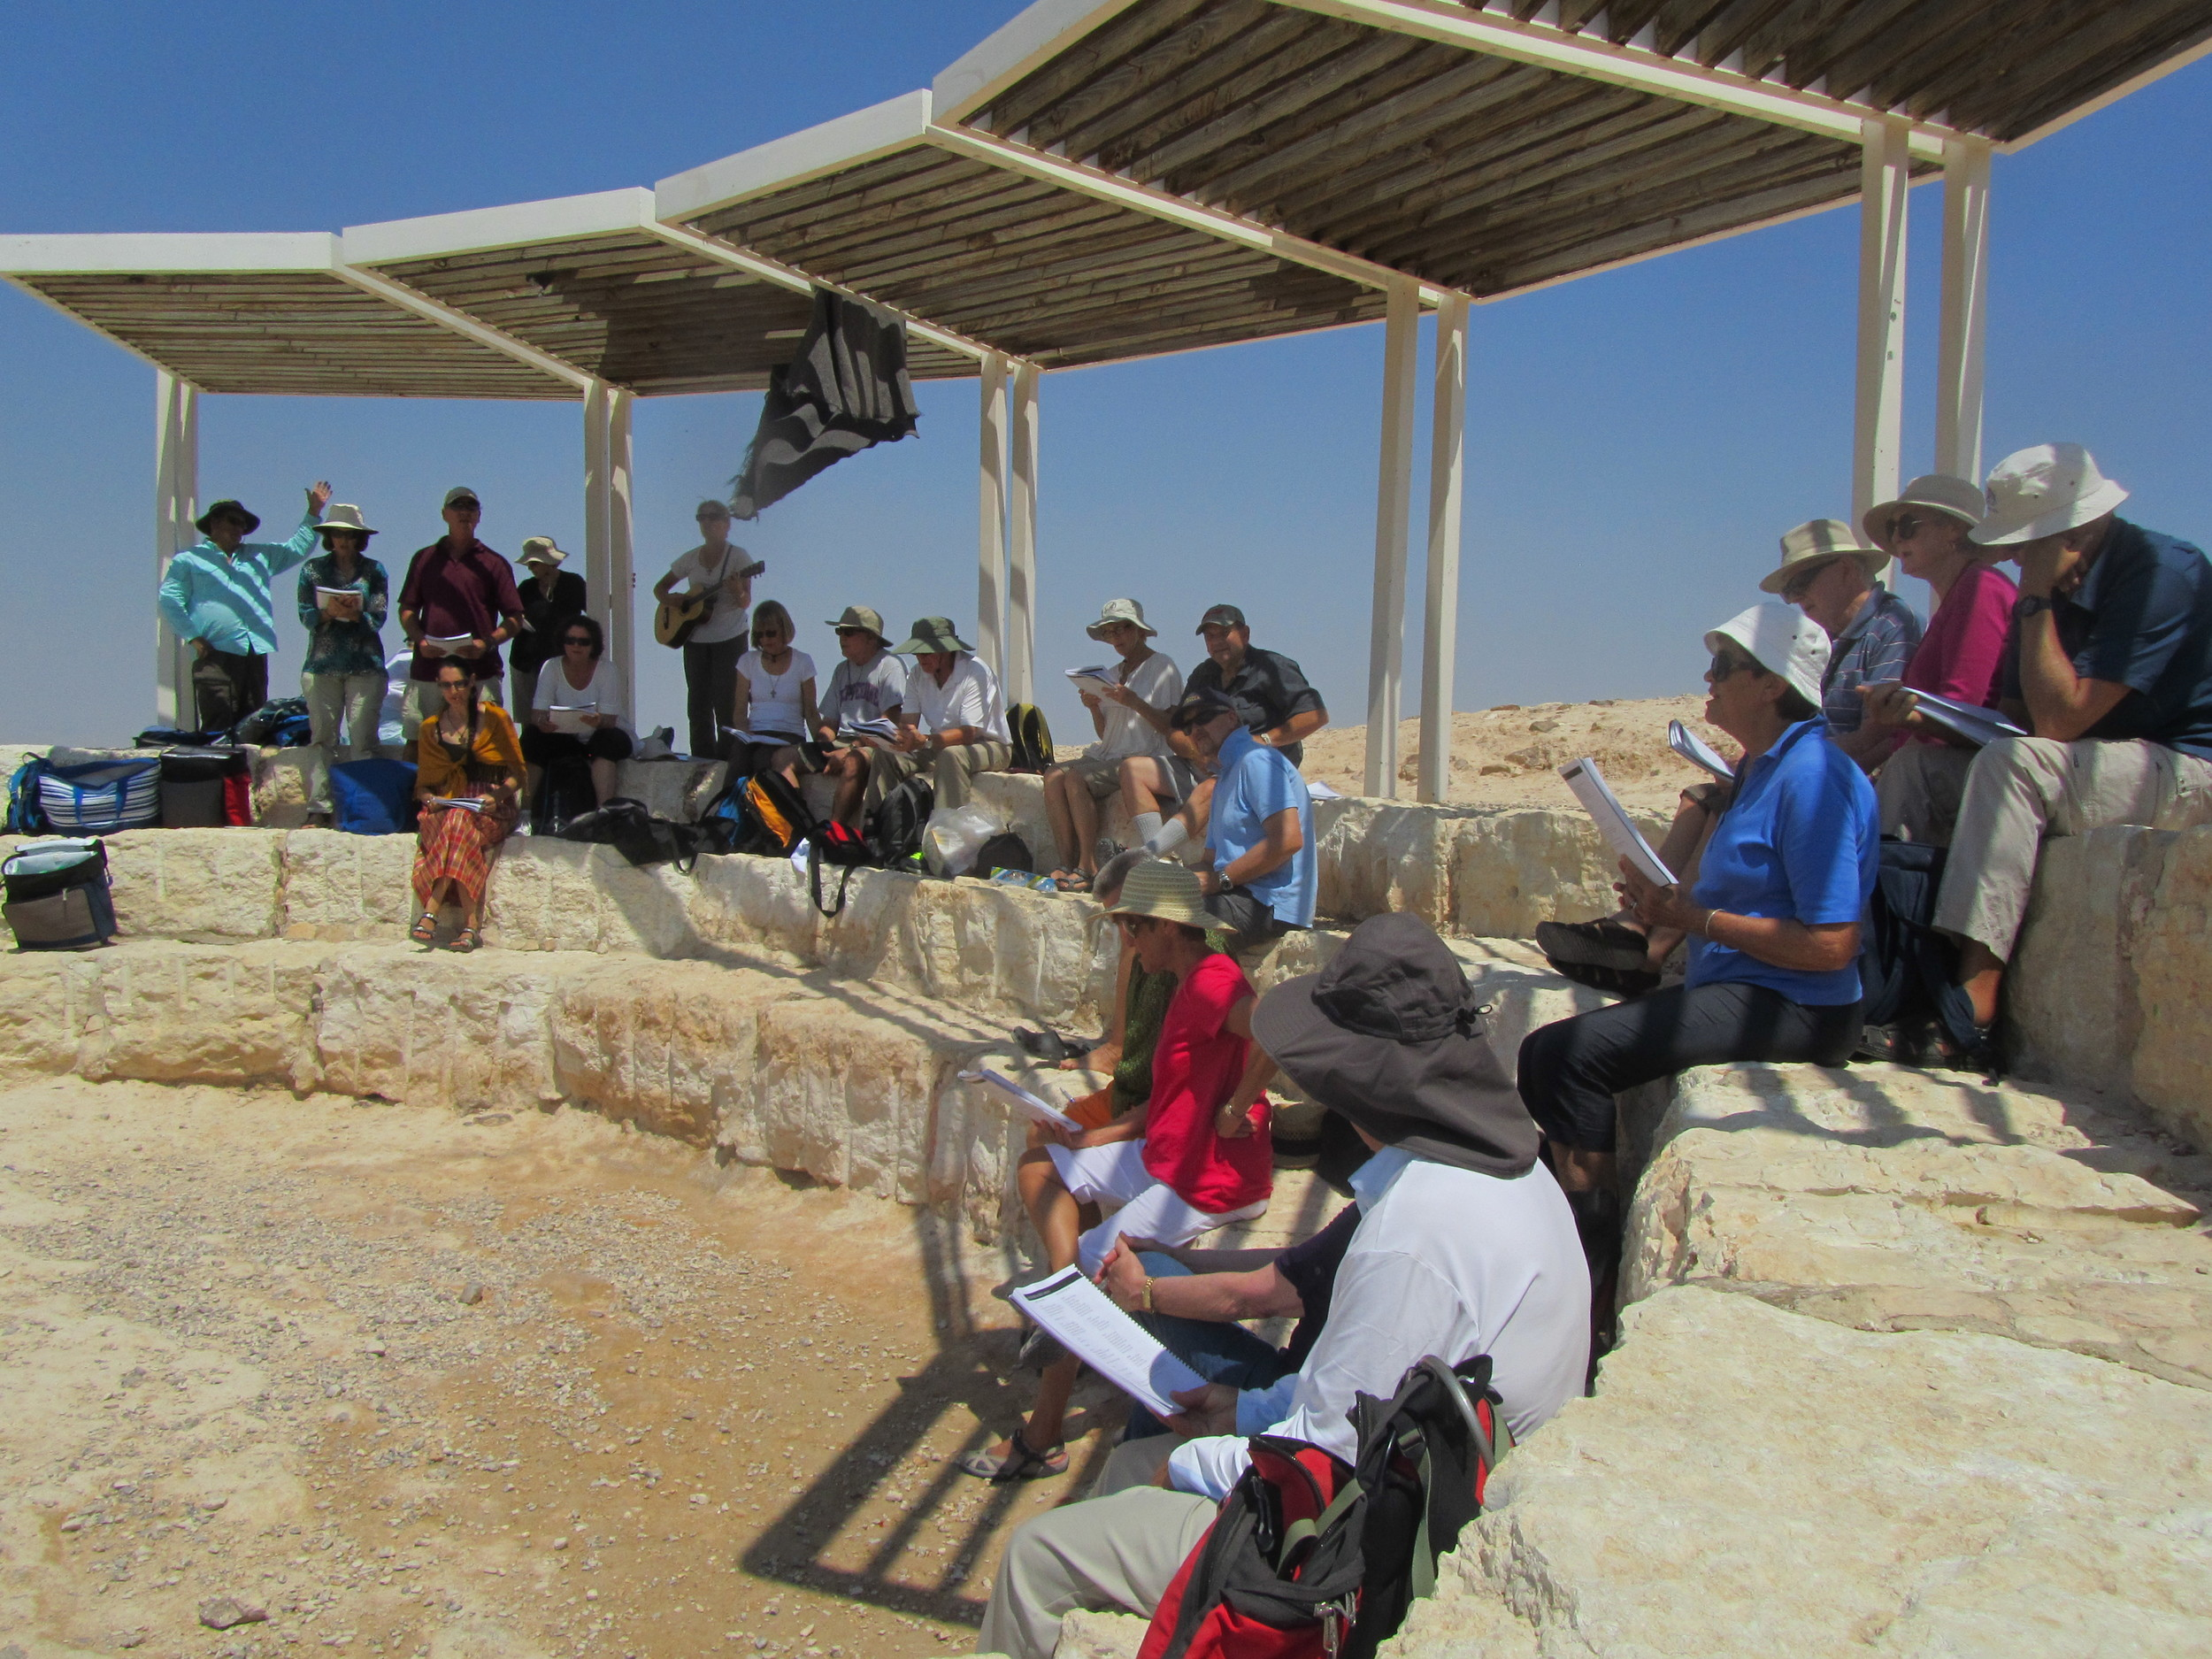 Worshiping in the Judean Desert Where Jesus Fasted and Was Tempted